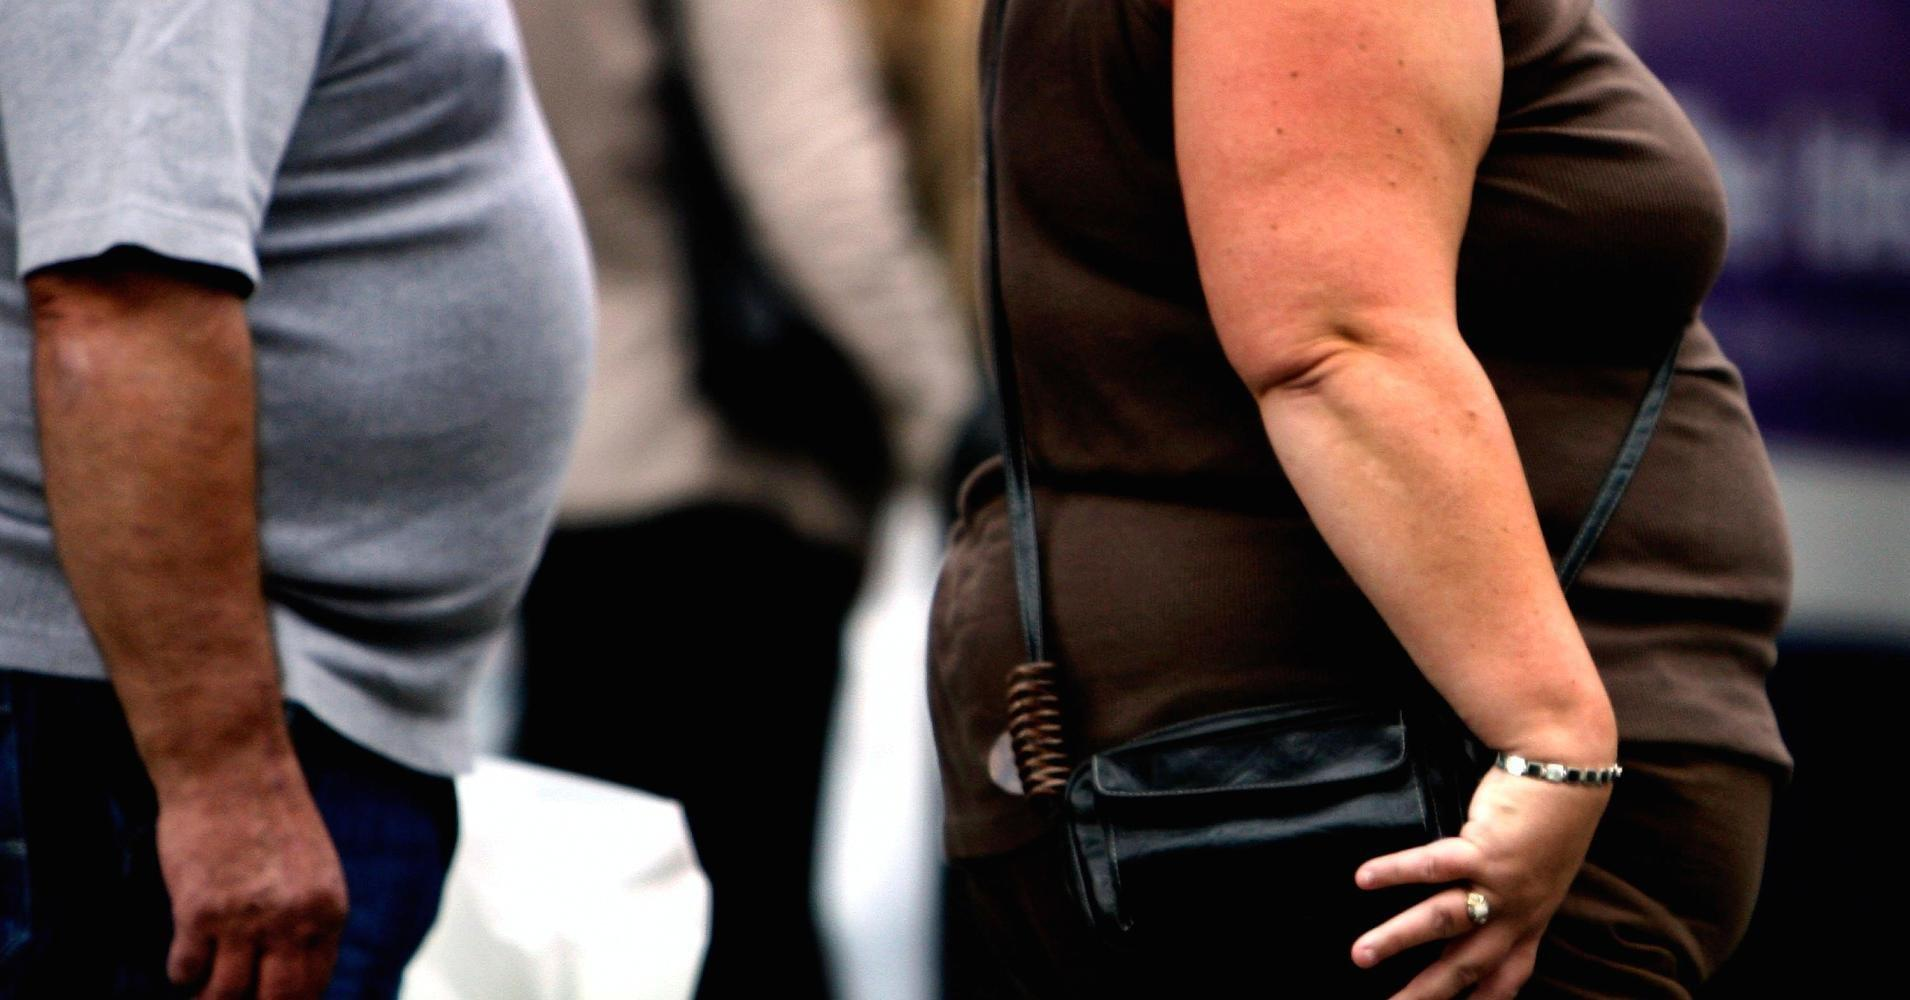 One third of Americans are headed for diabetes, and they don't even know it